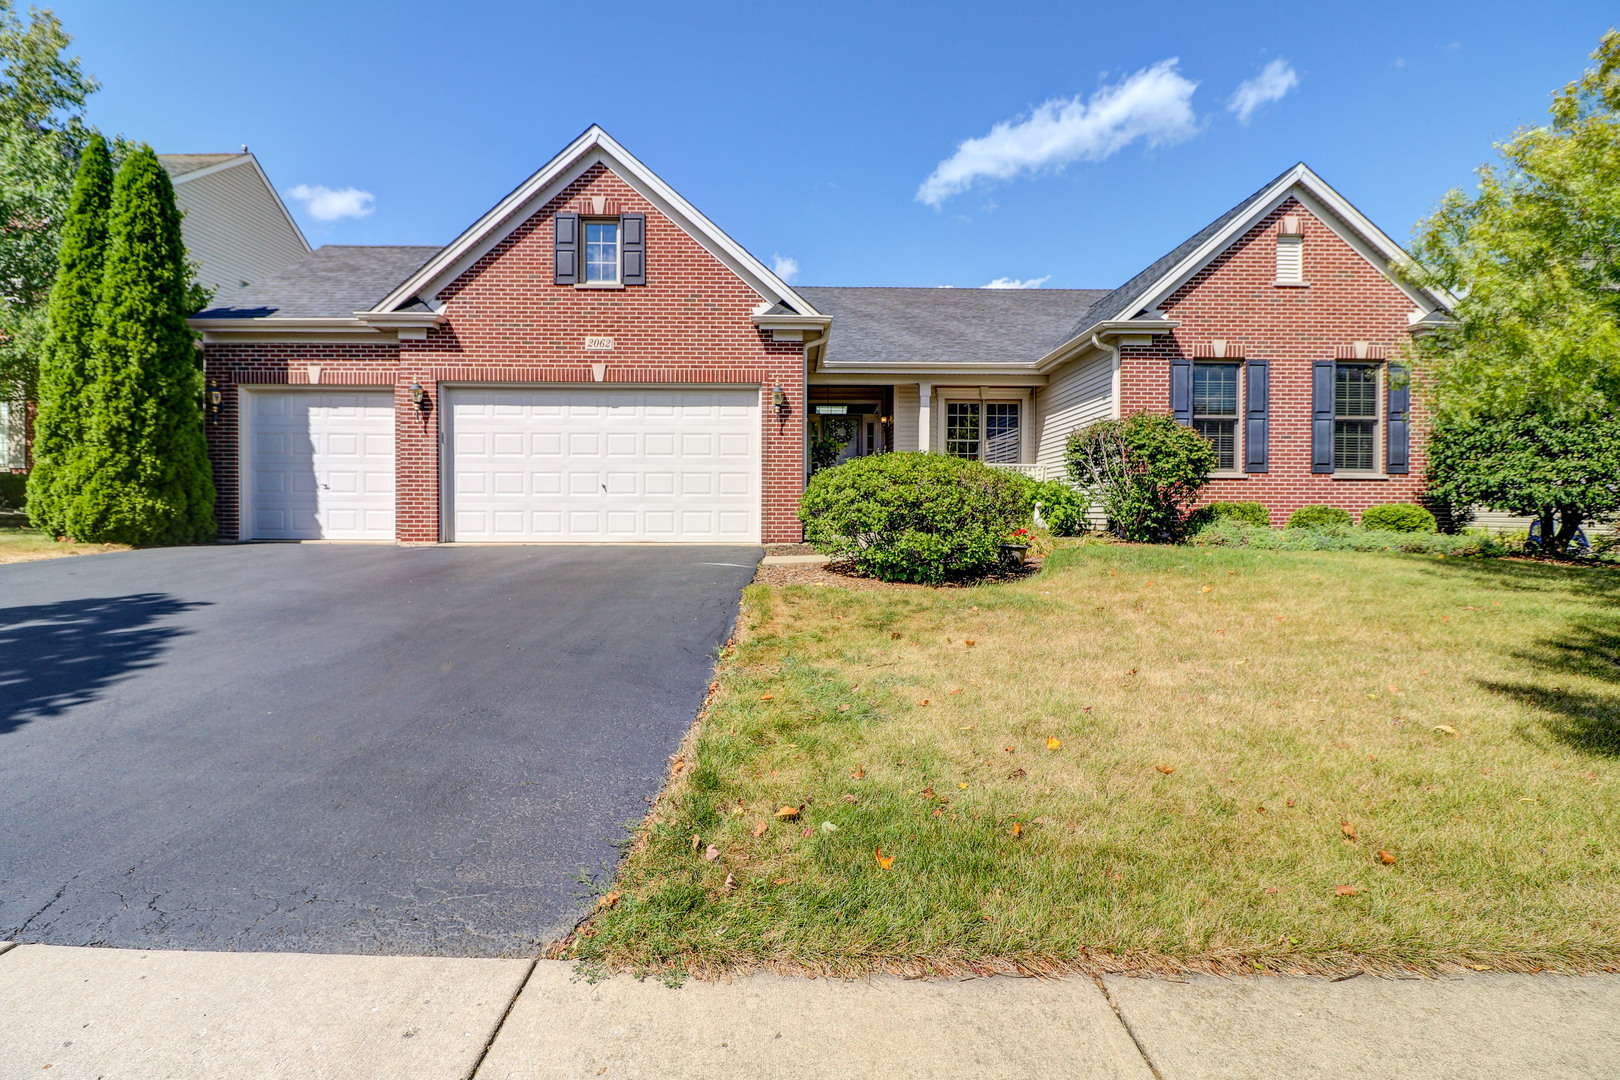 Photo for 2062 Tunbridge Trail, Algonquin, IL 60102 (MLS # 10847377)